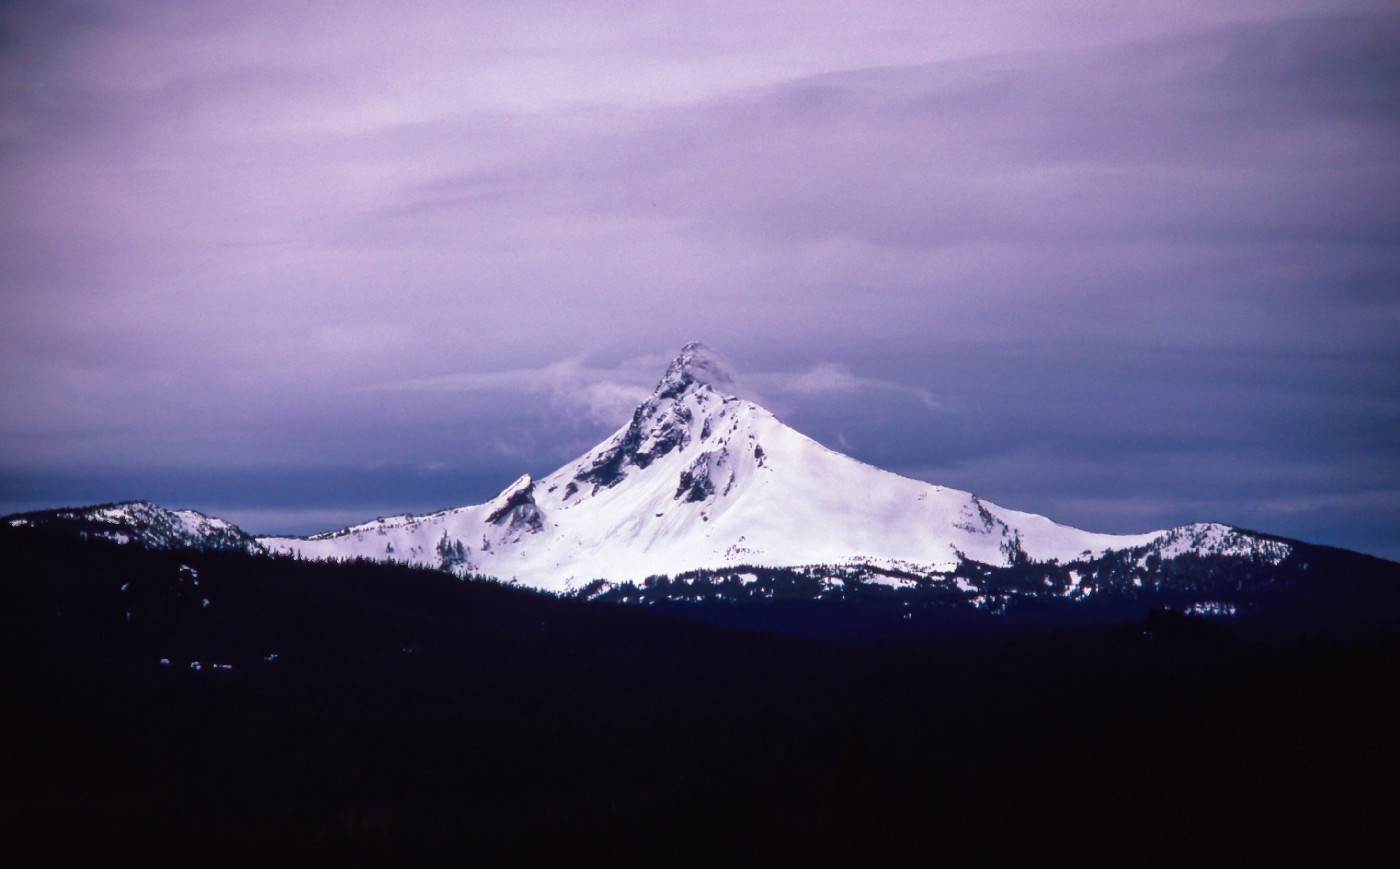 Stock image of a purple snow-capped mountain